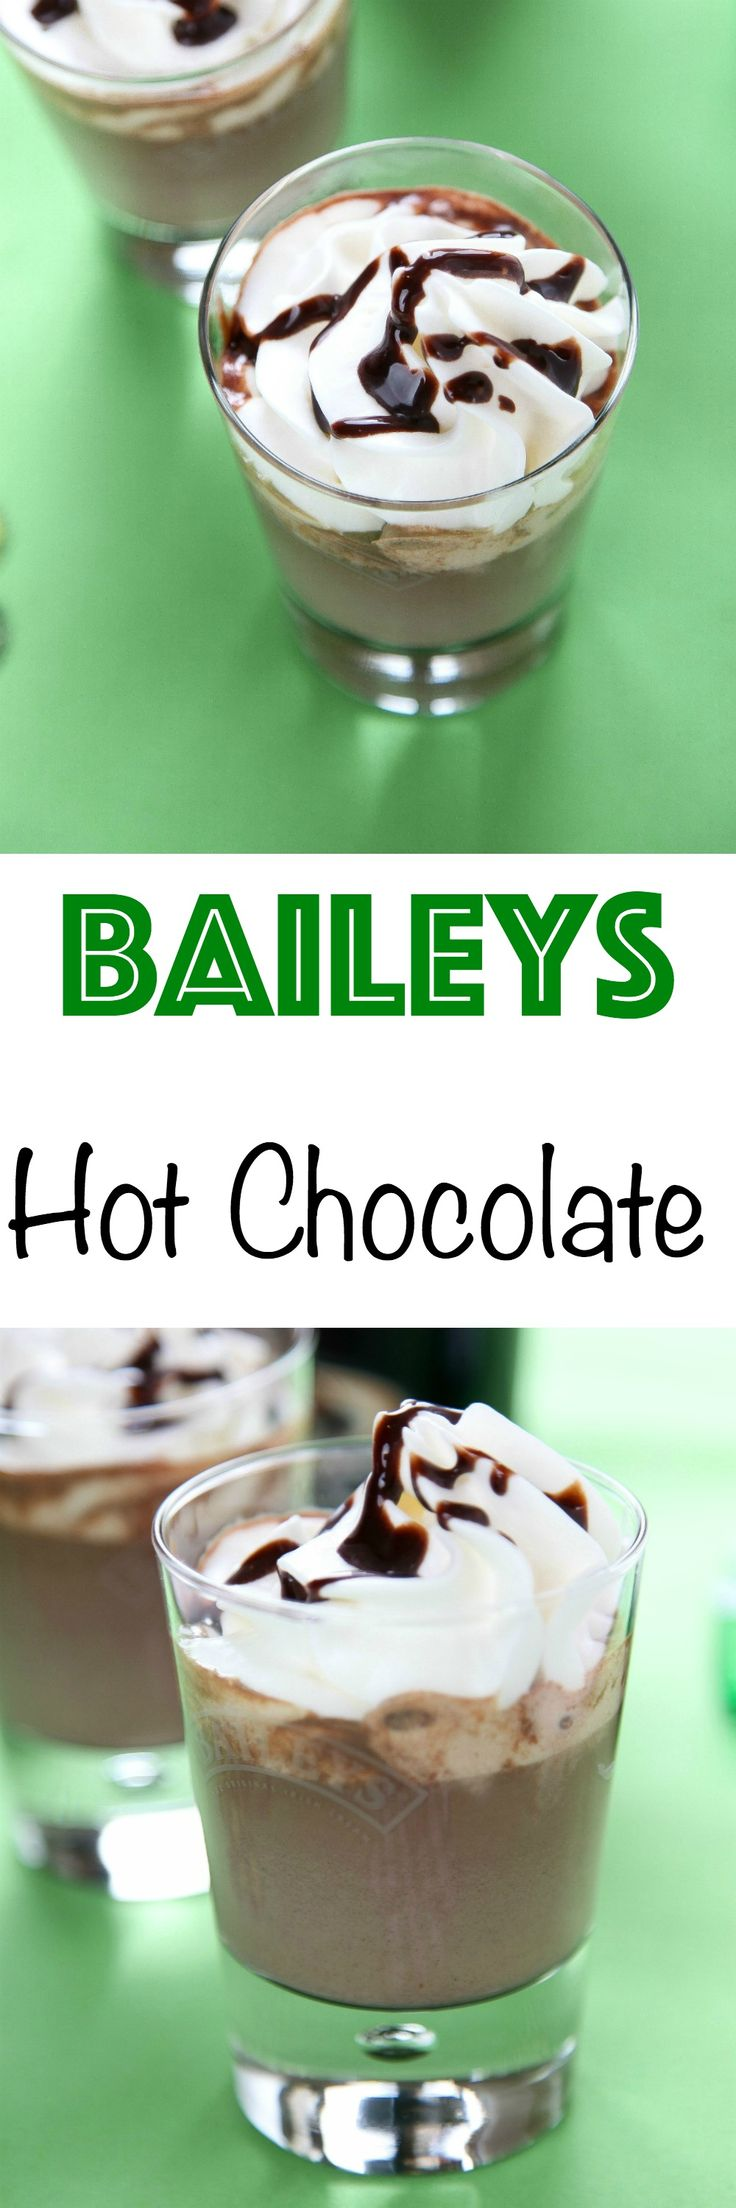 Bailey's Hot Chocolate: Rich and creamy hot chocolate with a boozy kick. You'll never want regular hot chocolate again!